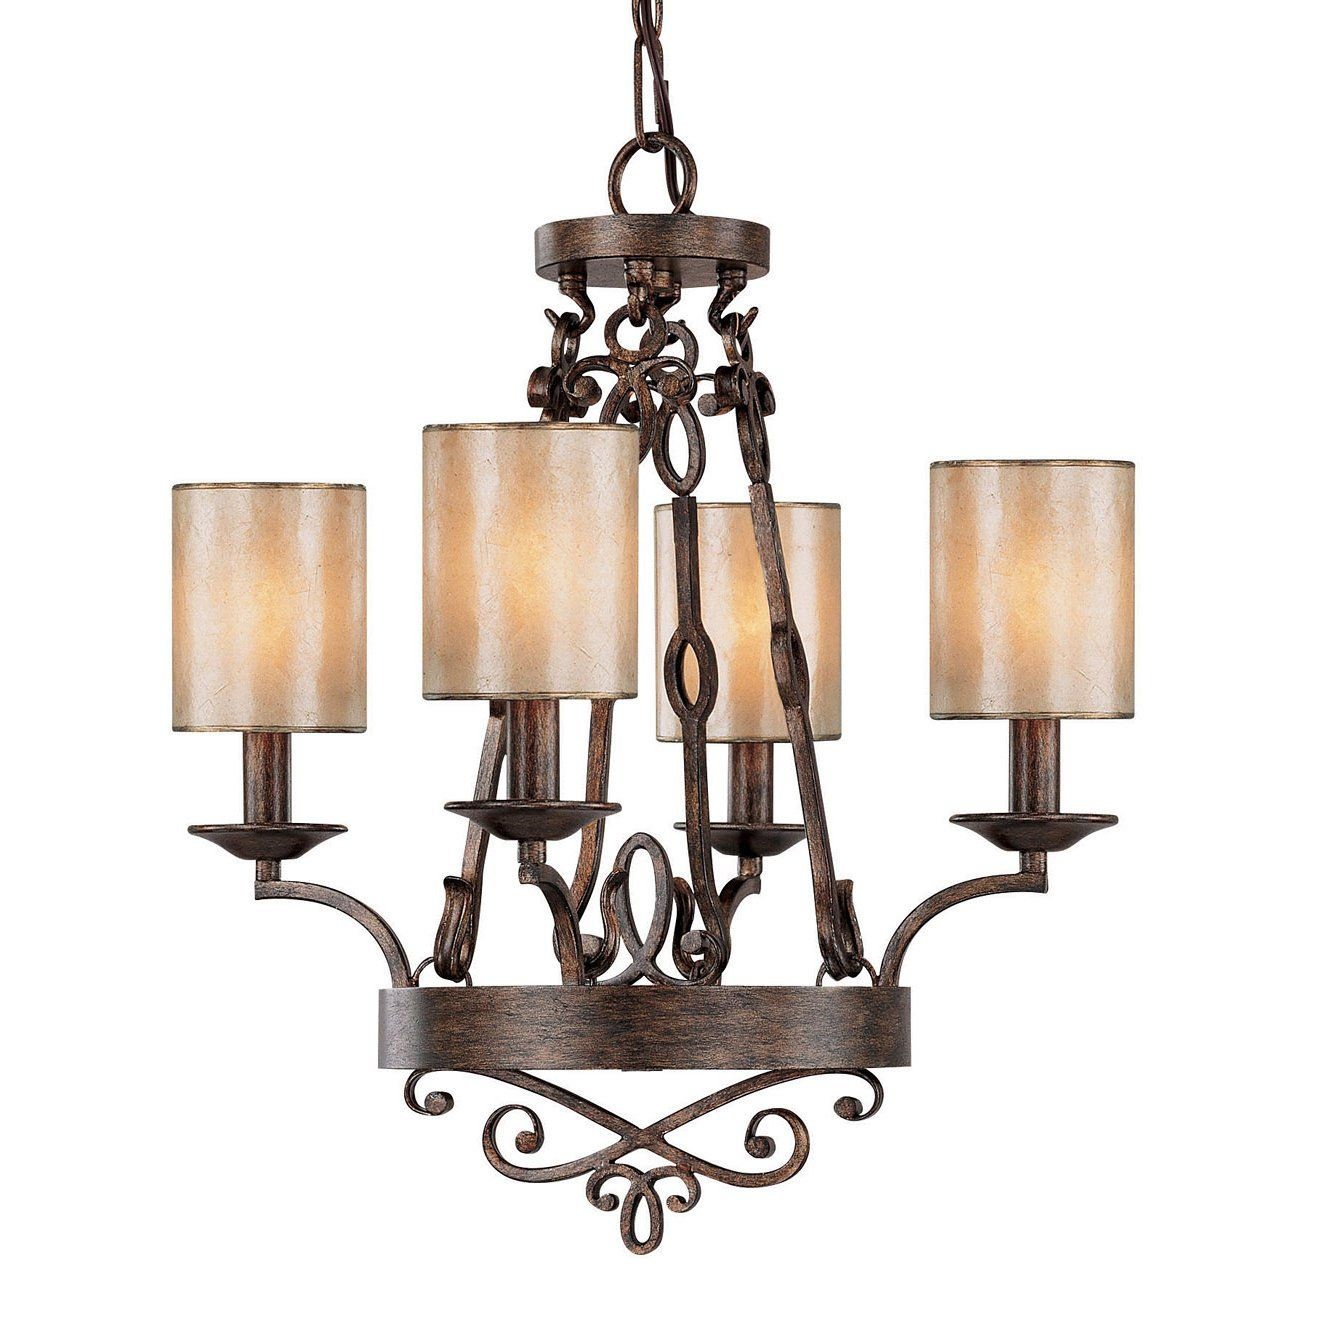 Reserved For Jacquidowd Rustic Lighting With Vintage Rustic: Capital Lighting 4164RT-510 4 Light Reserve Chandelier